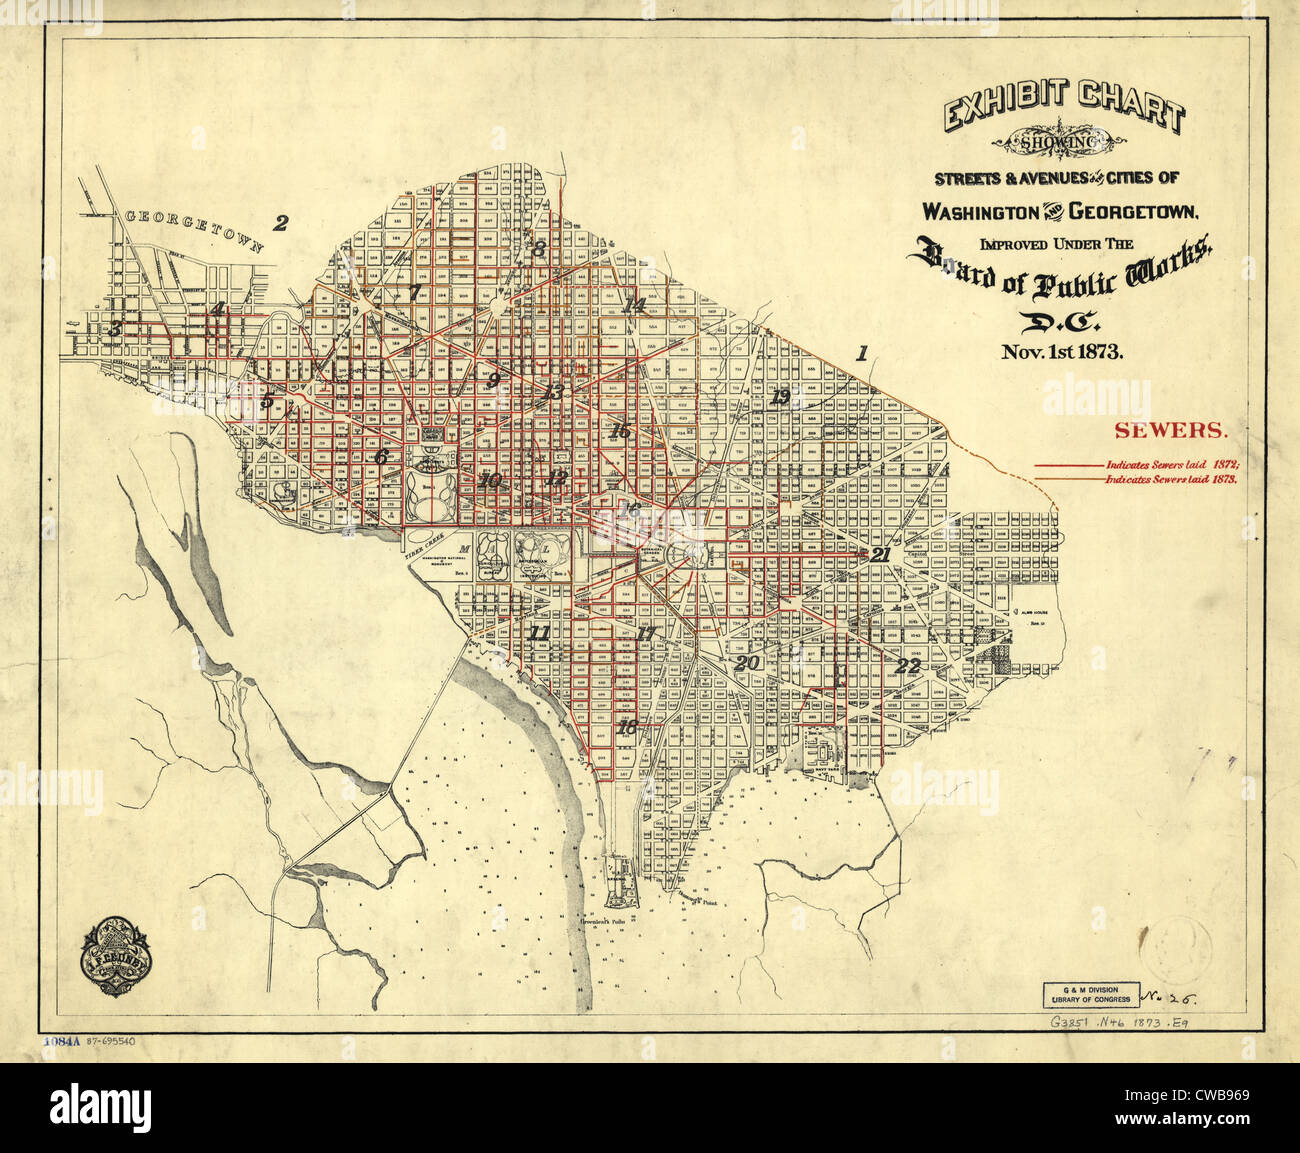 Washington, D.C. Map showing the District of Columbia. 1873 Stock ...